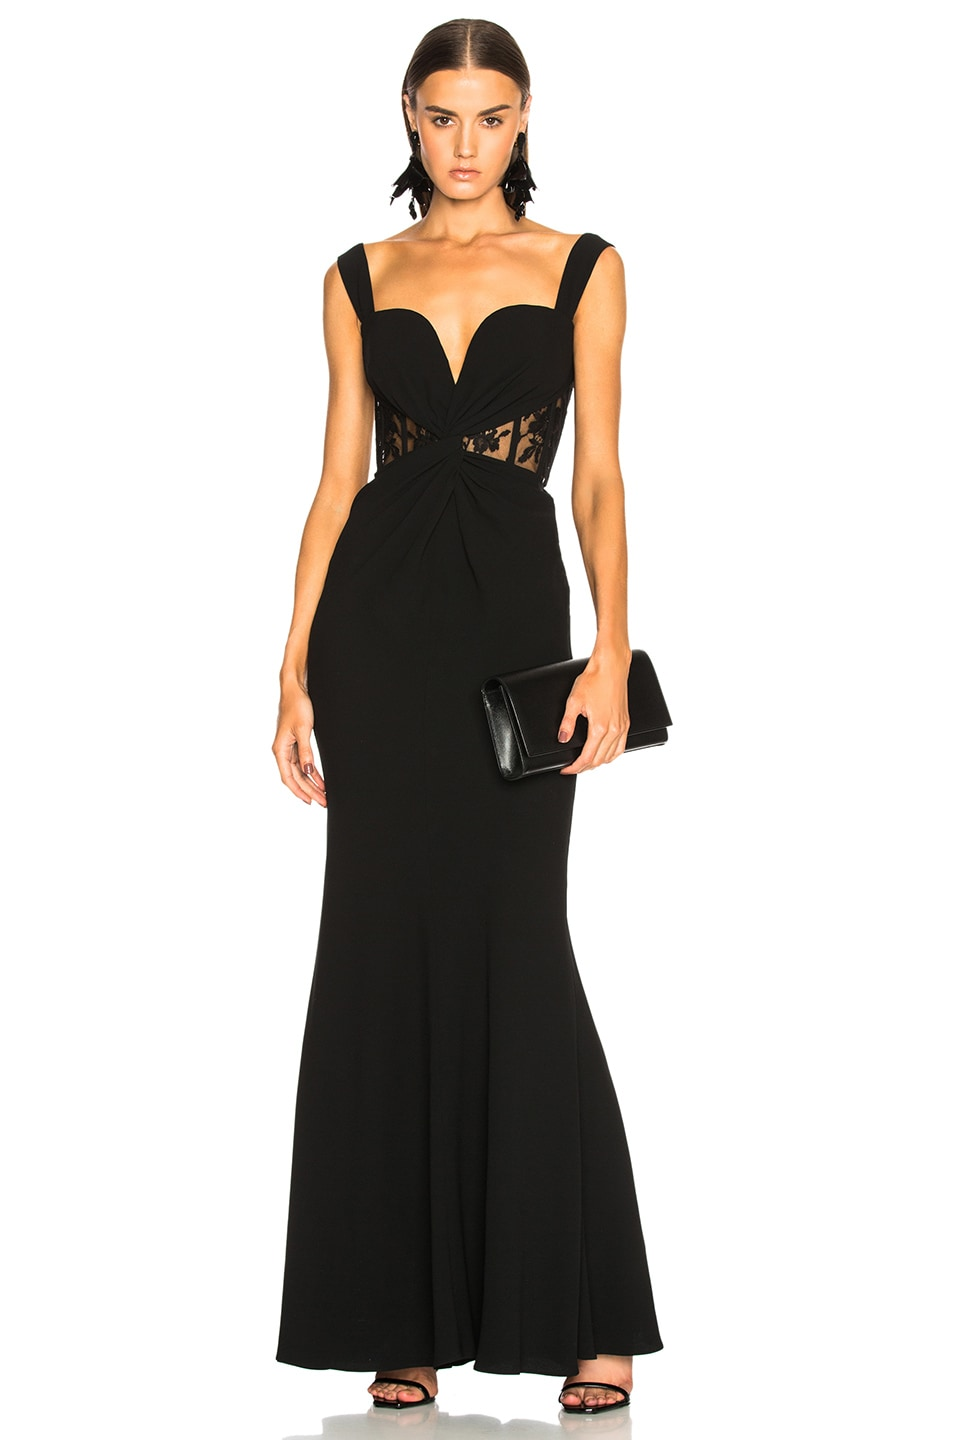 Image 1 of Alexander McQueen Sleeveless Bustier Gown in Black 36193b1cb